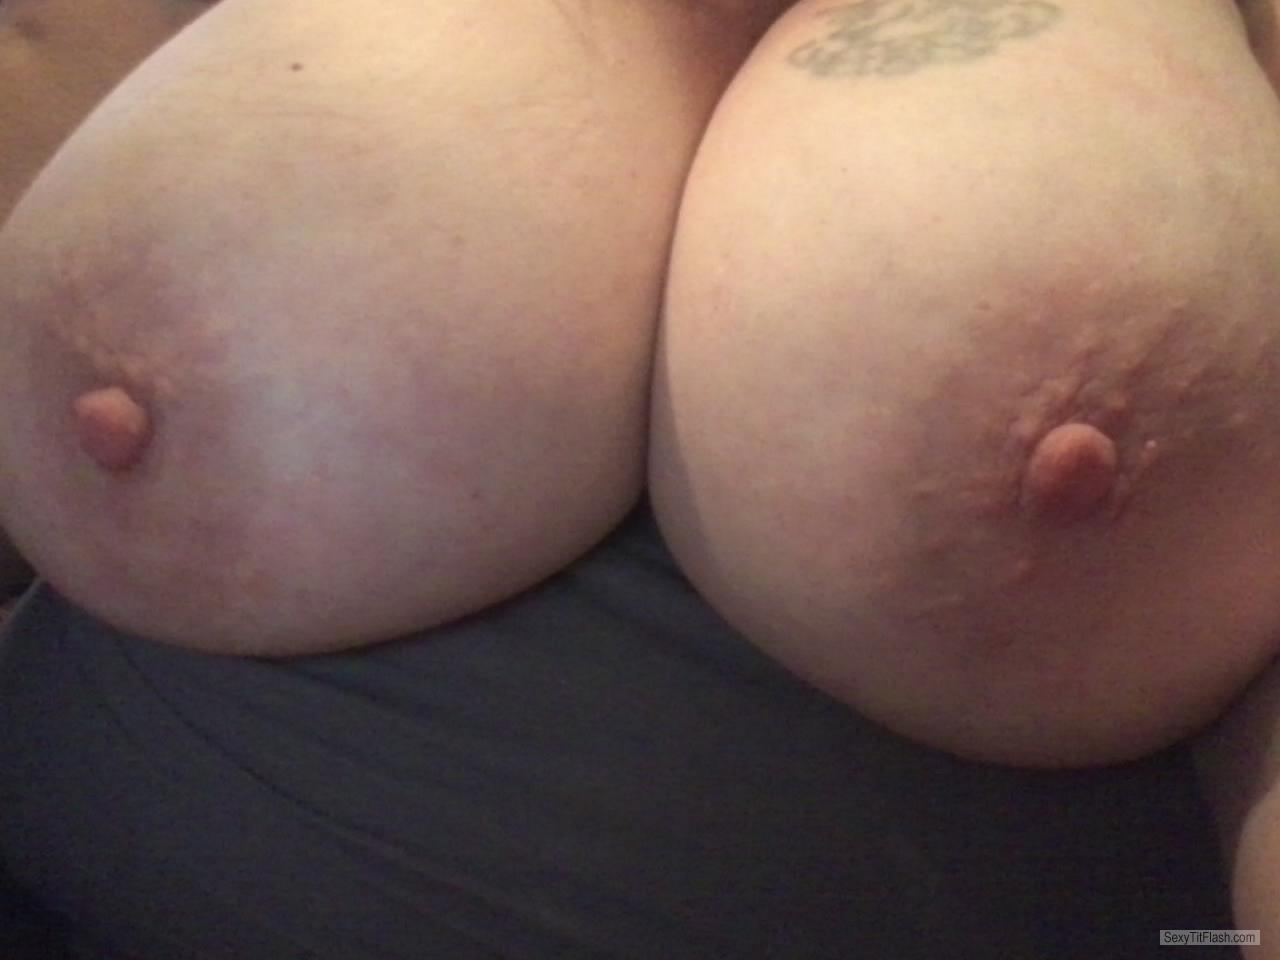 Tit Flash: My Extremely Big Tits (Selfie) - U Like? from United States